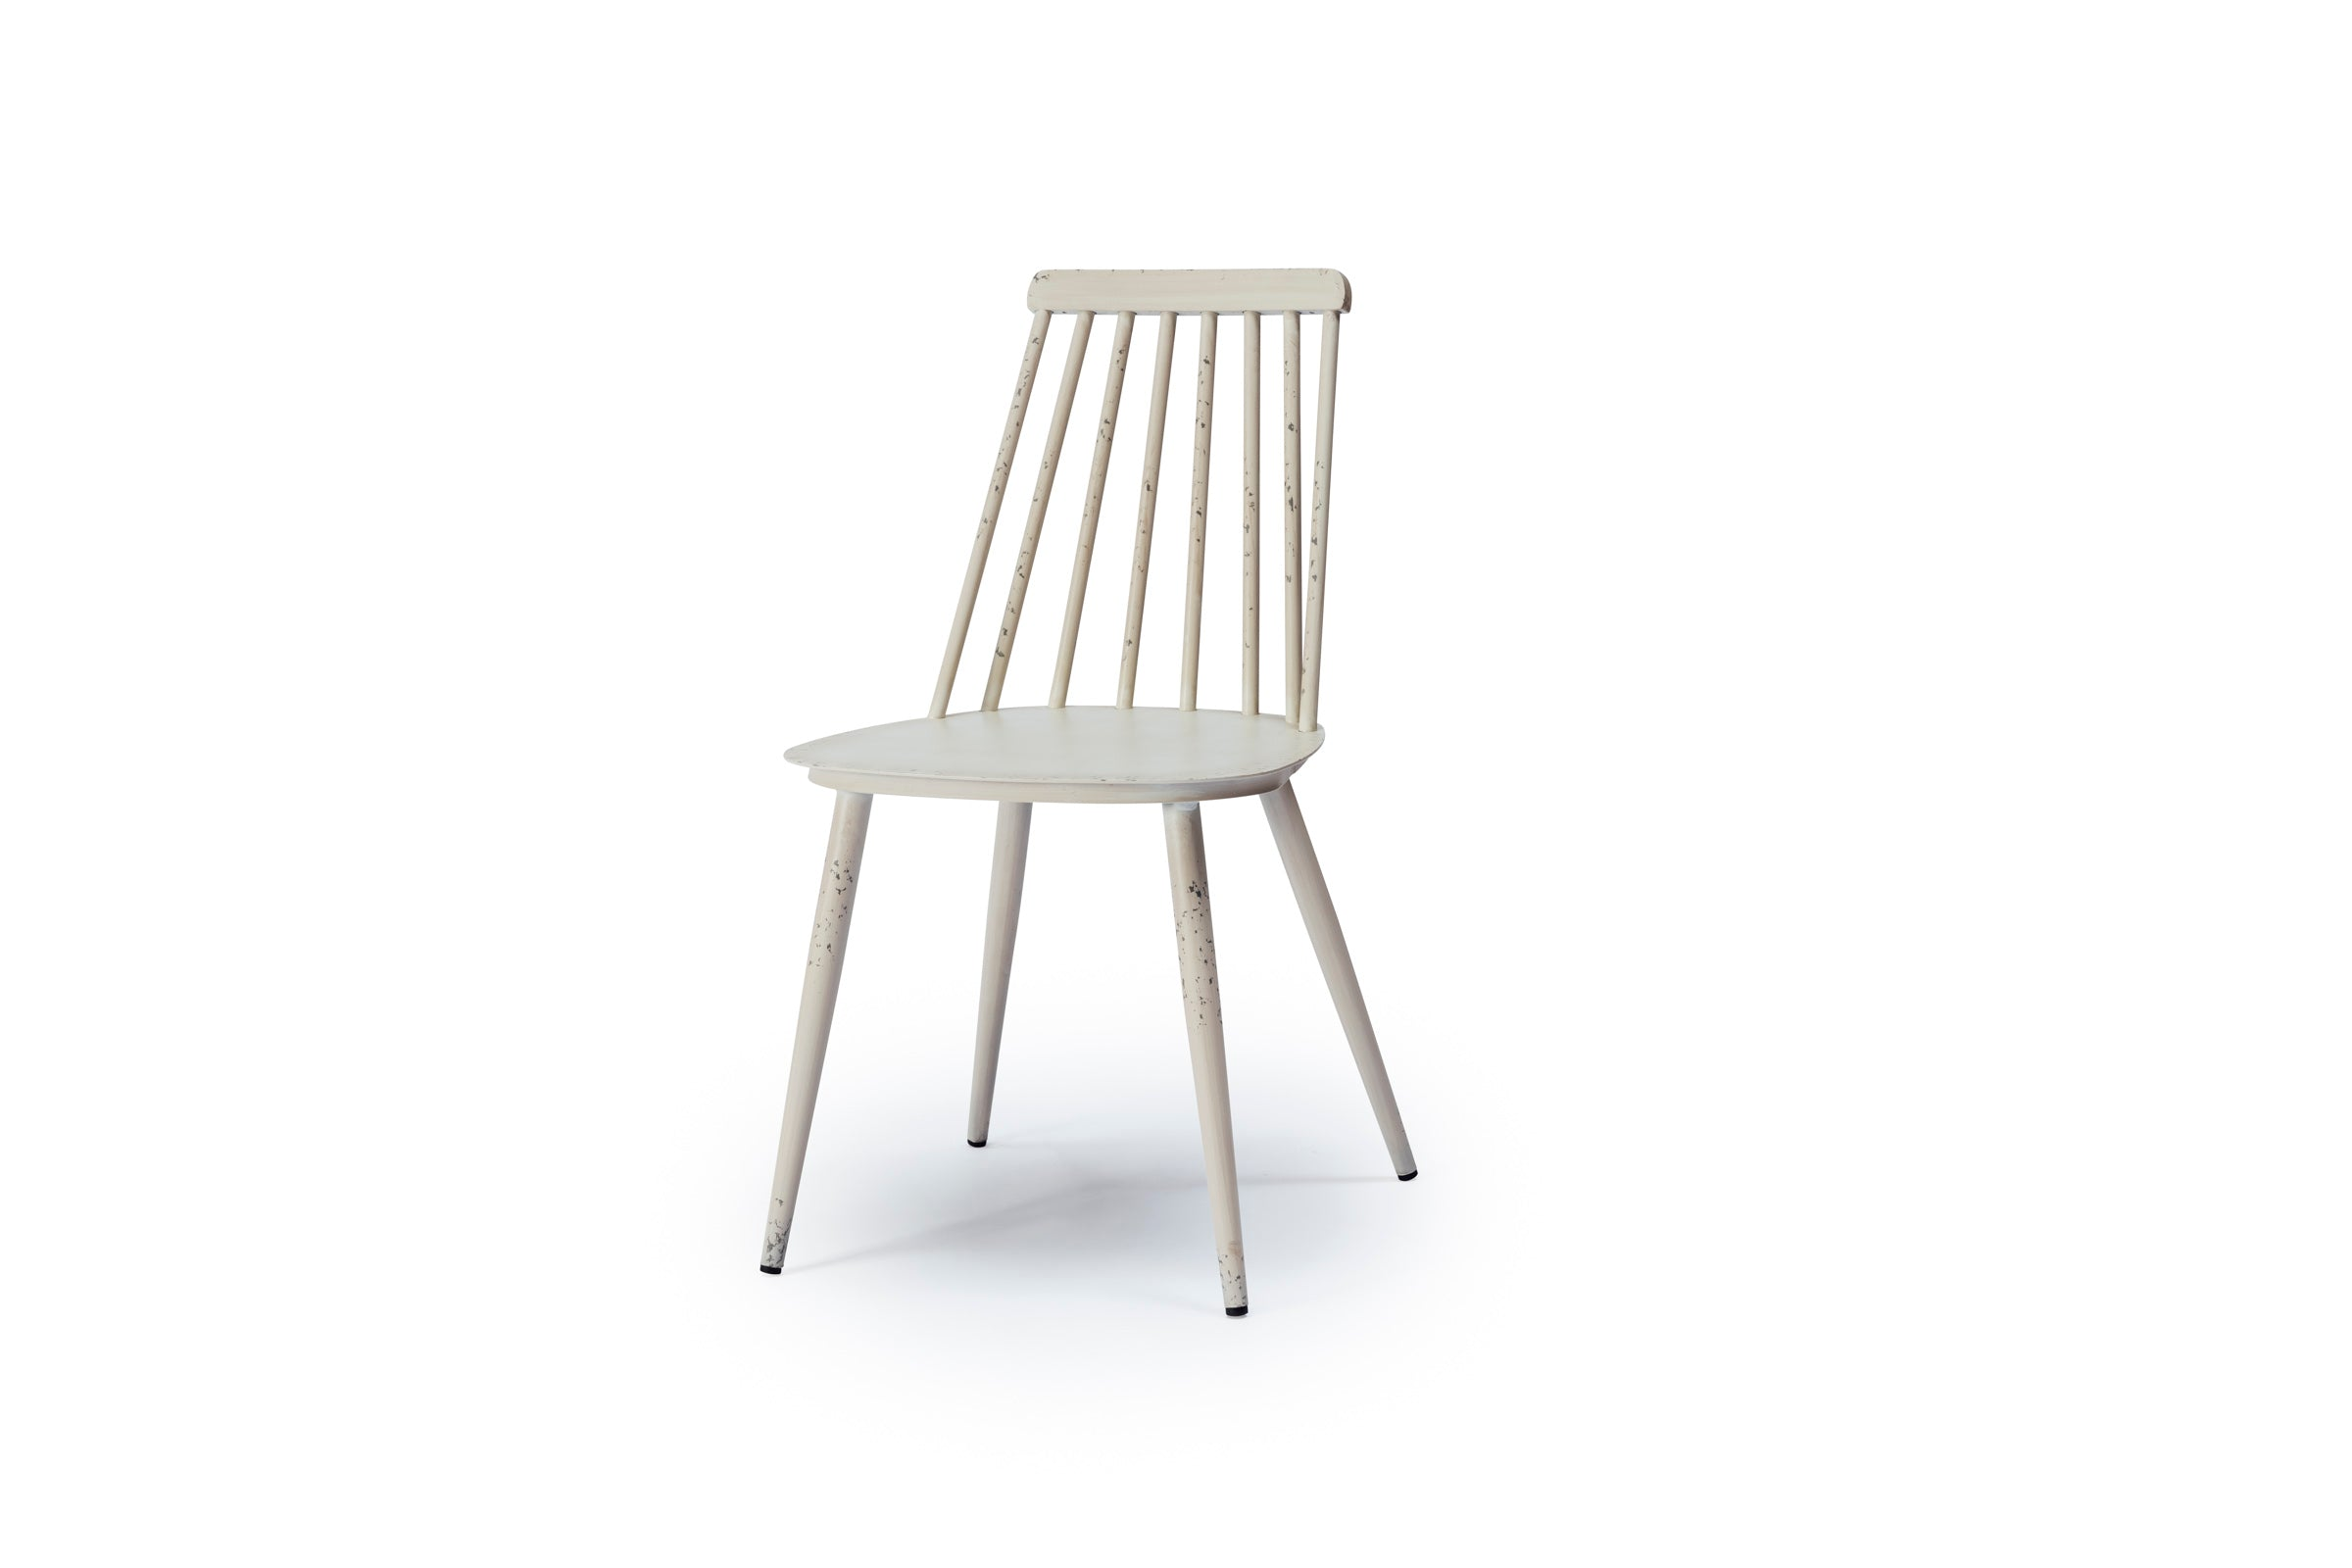 slat back chairs. Capel Replica Windsor Outdoor Pastel Dining Chairs Slat Back C